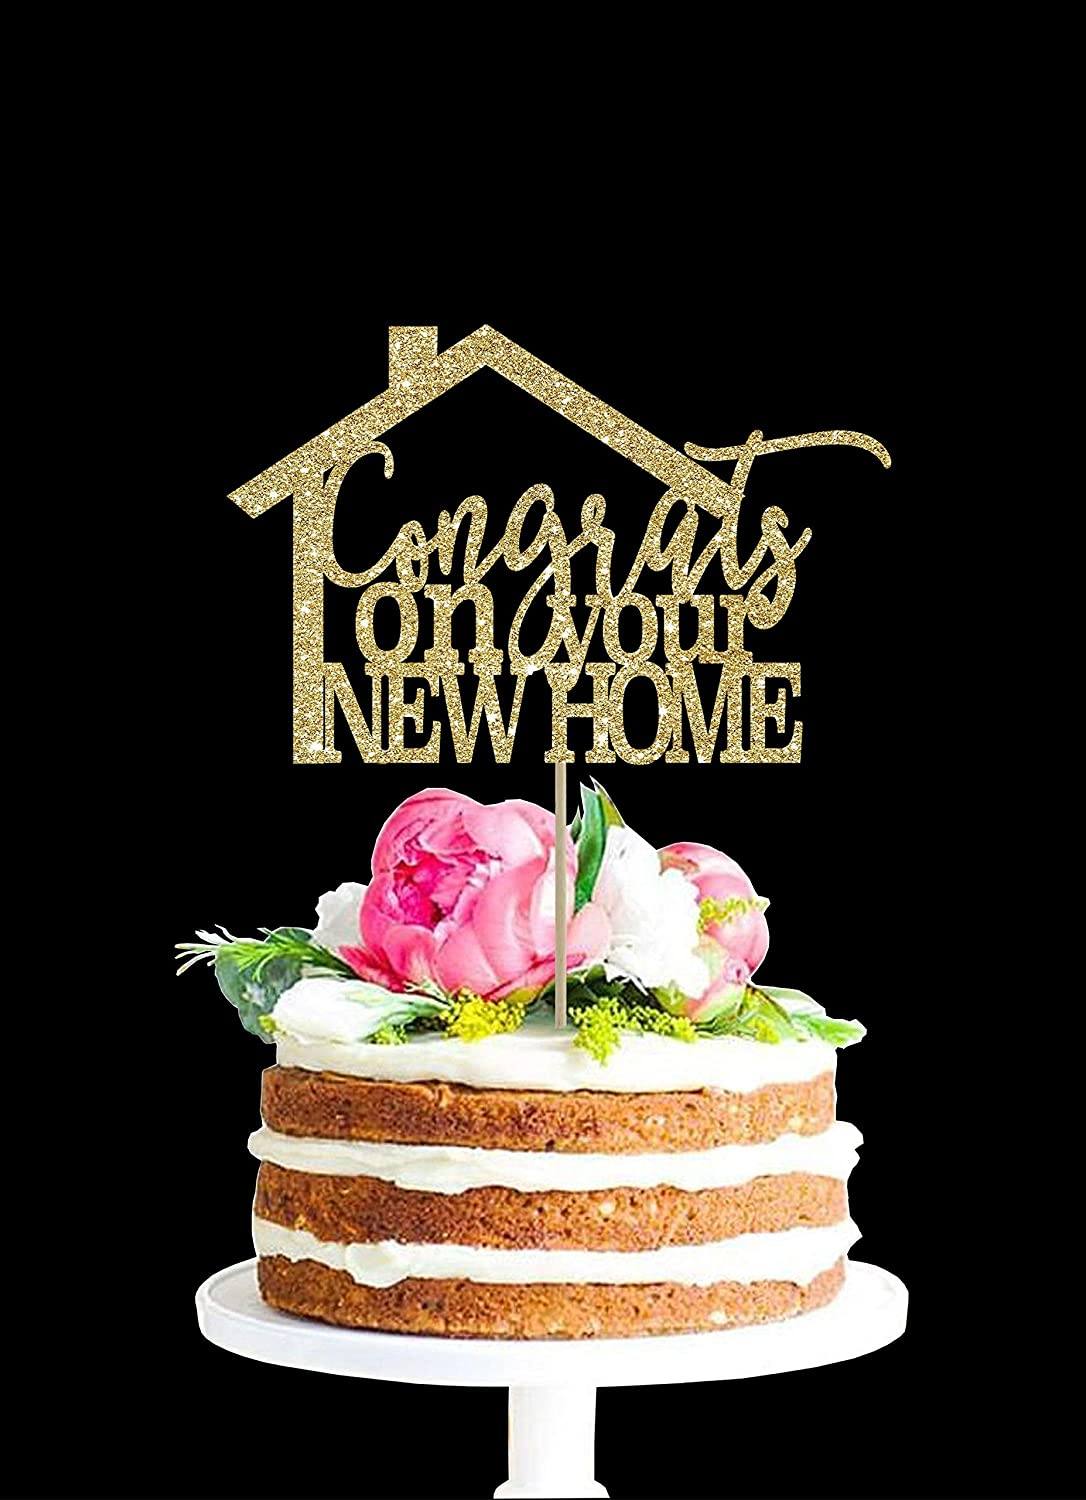 Congrats On New Home New Home Cake Topper House Warming Gift Centerpiece House Cake Topper Home Decoration New Home Decoration Amazon Co Uk Kitchen Home